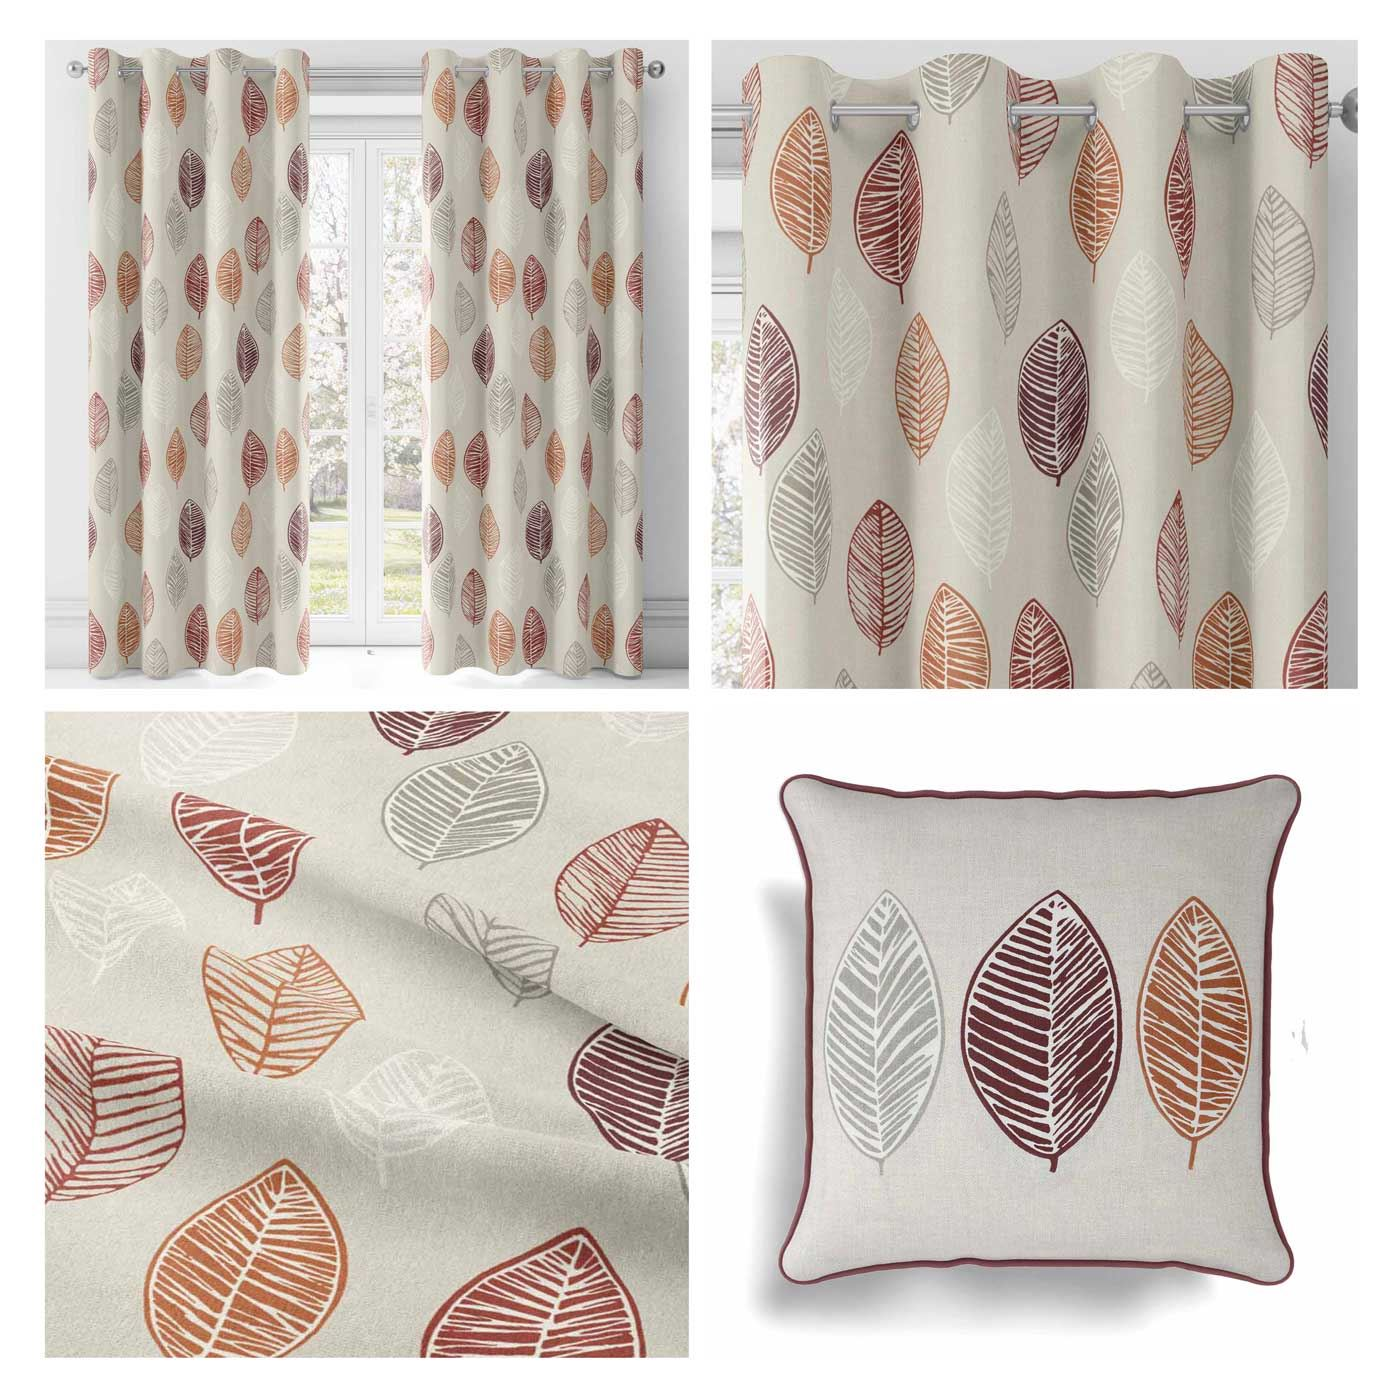 Scandinavian Ready Made Curtains Details About Spice Terracotta Leaf Lined Eyelet Curtains Ready Made Curtain Ring Top Pairs